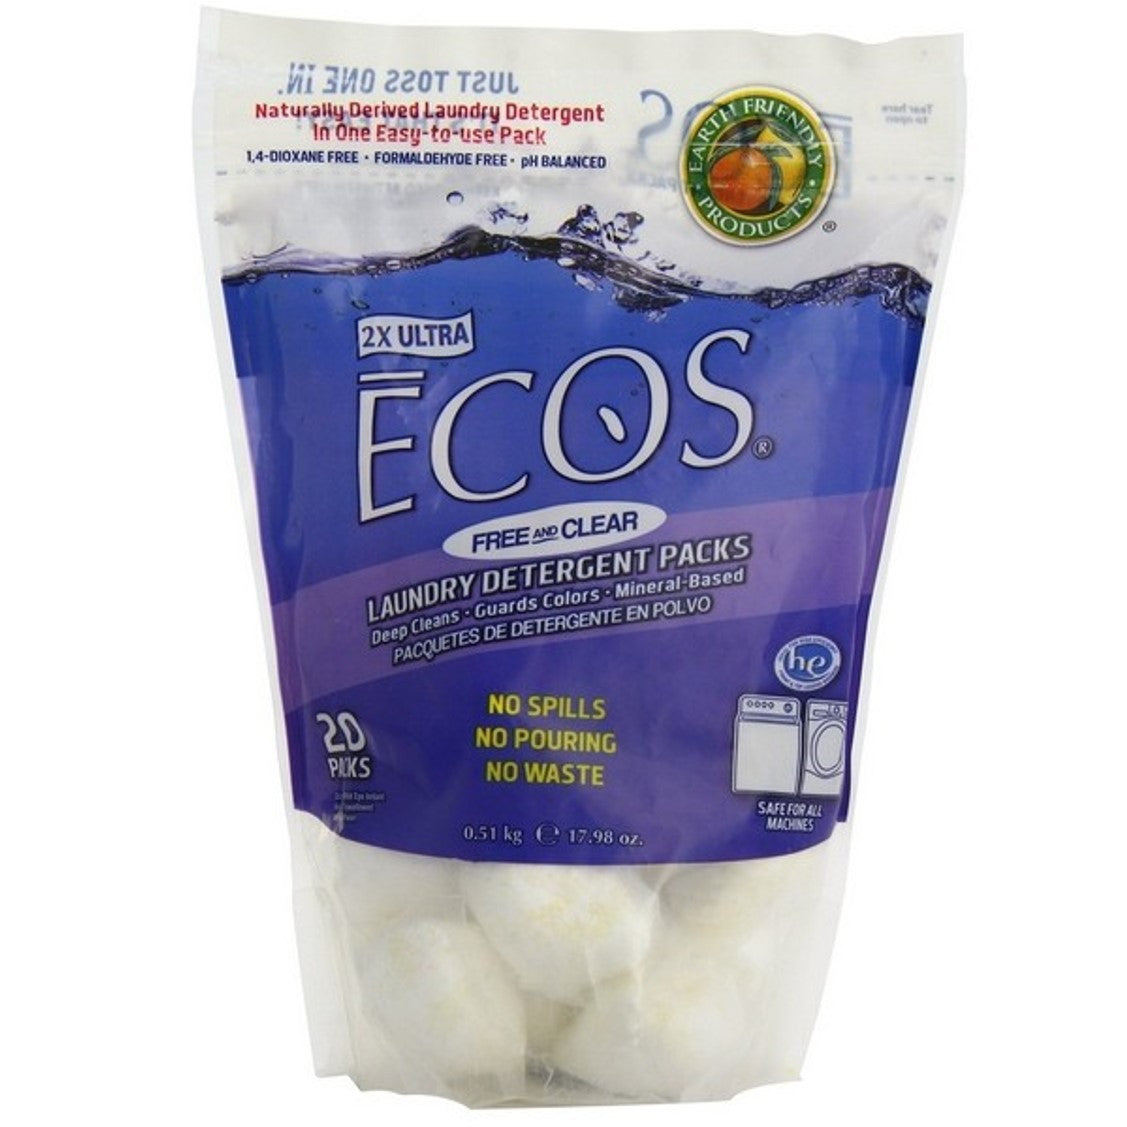 Earth Friendly ECOS Laundry Detergent Packs - Free & Clear, 510 g.